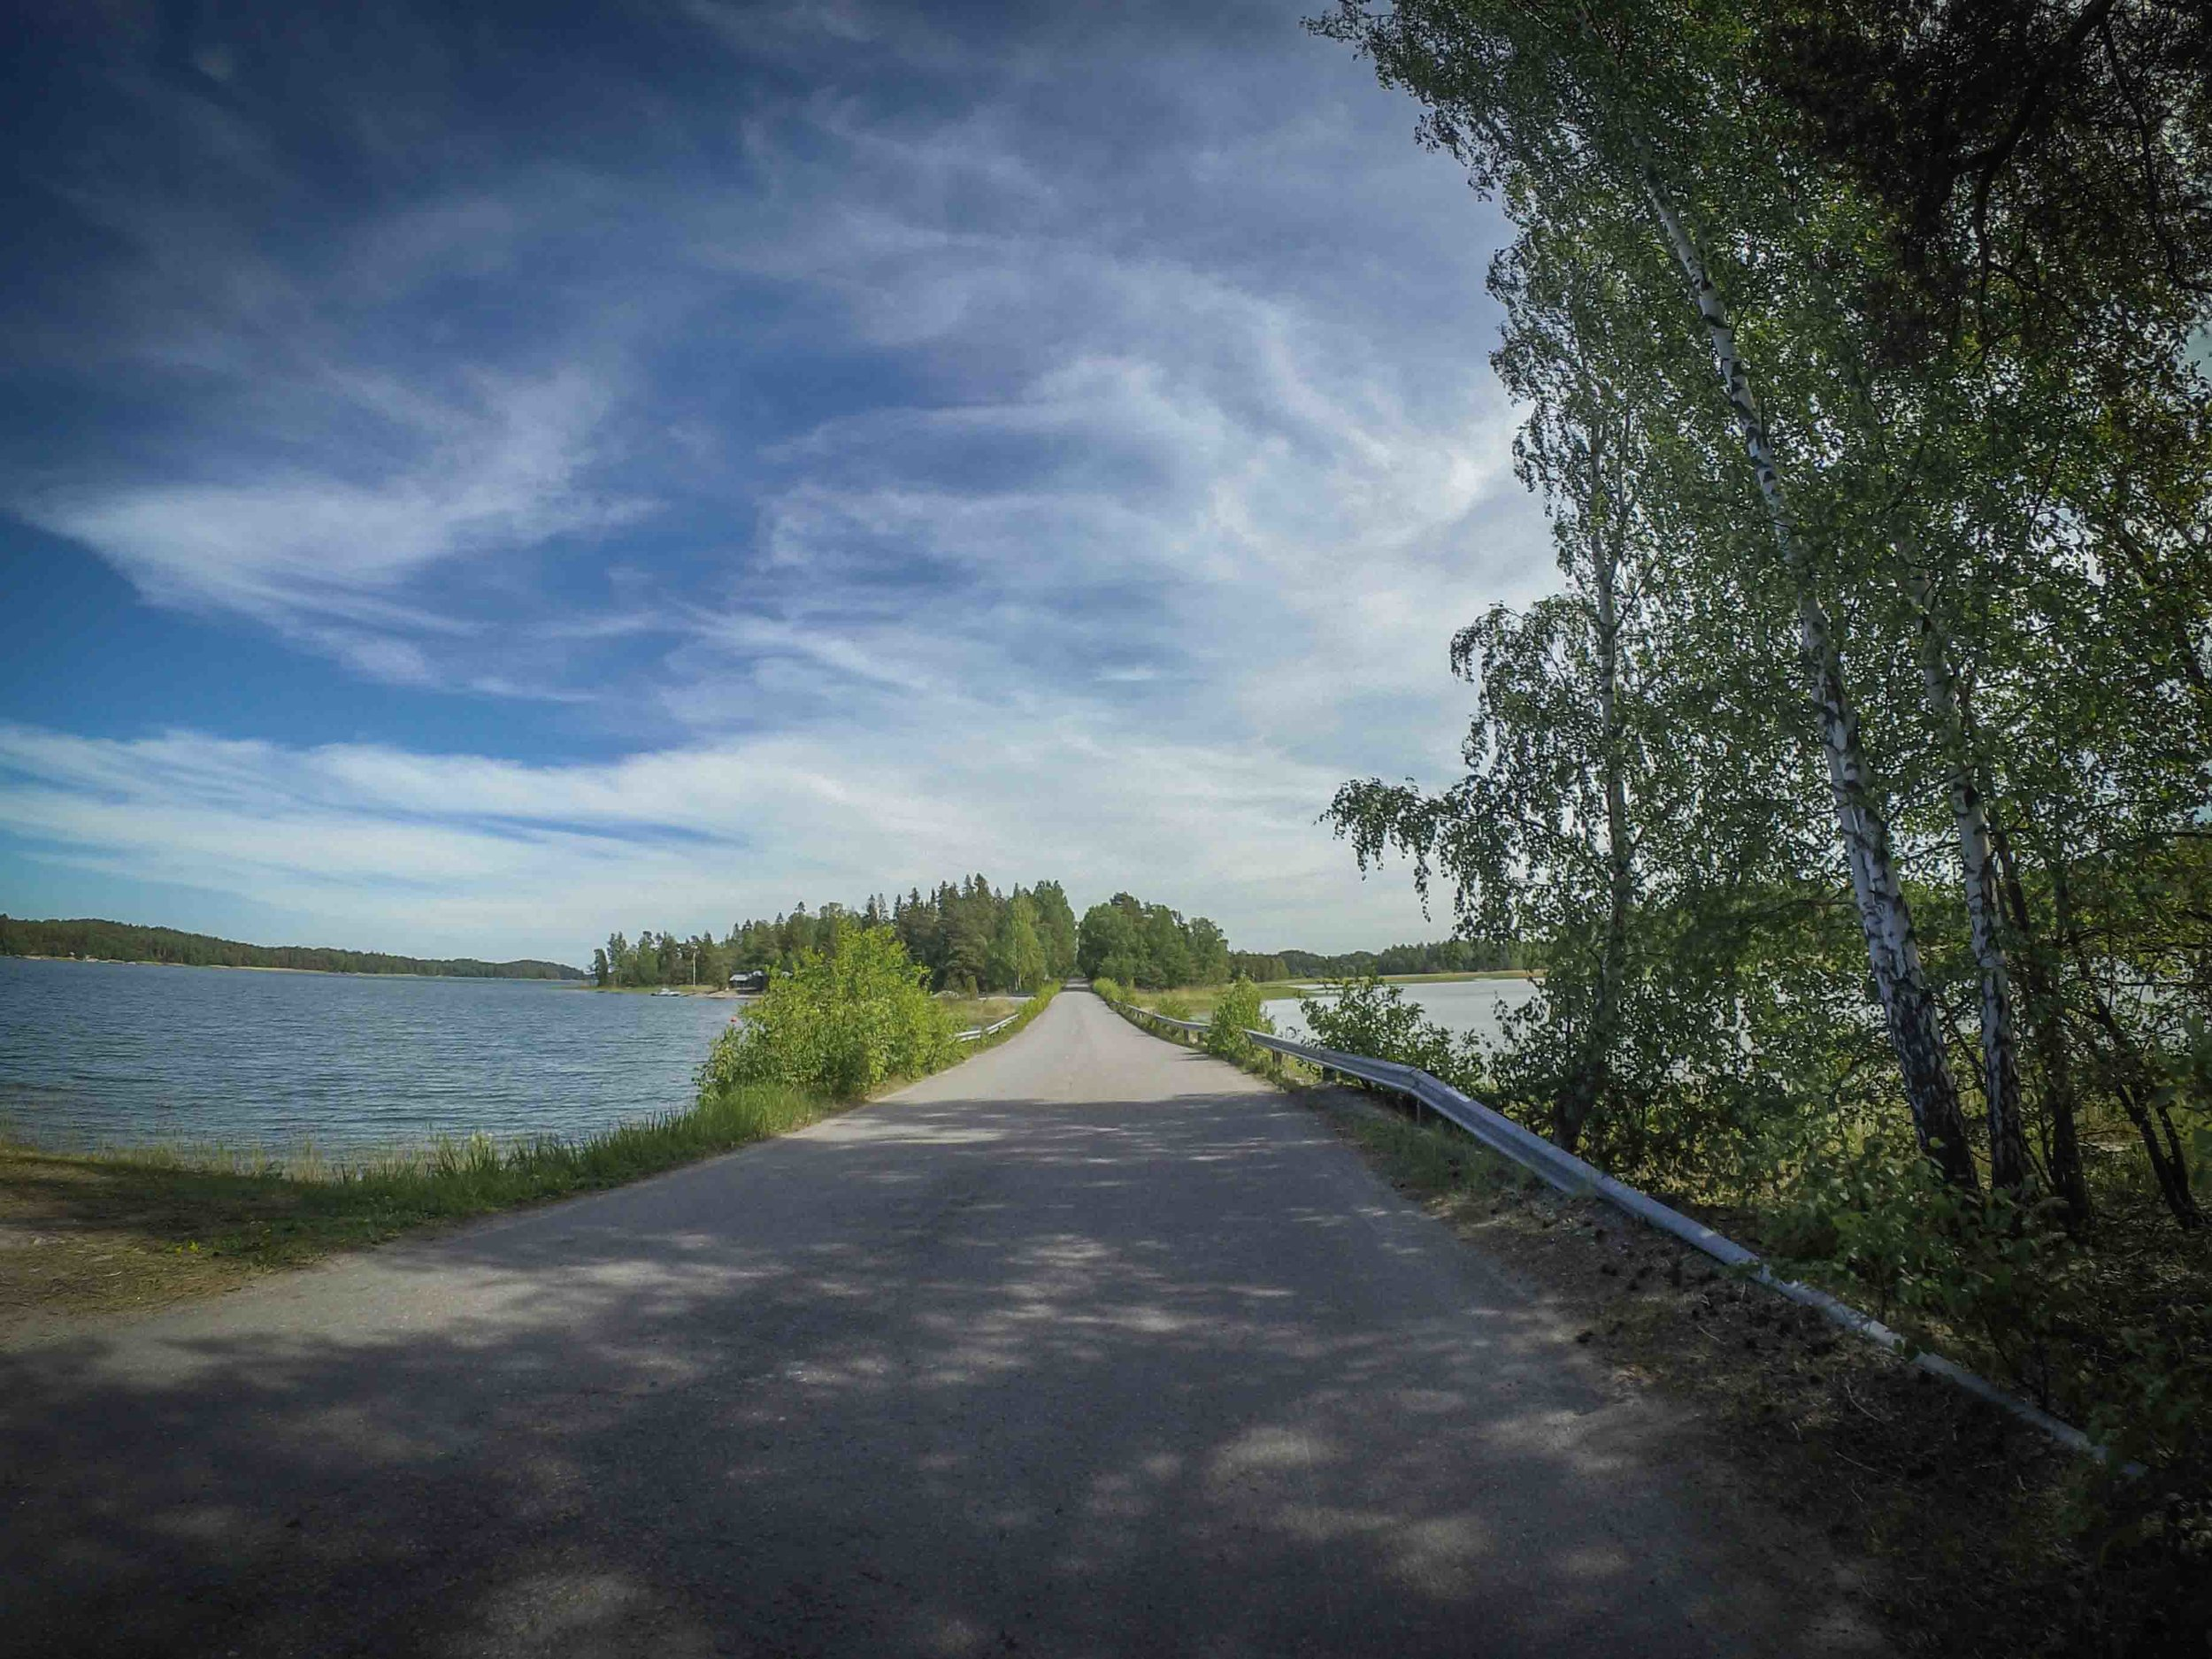 My first ride to the Archipelago this year was May 27th. A beautiful day it was!